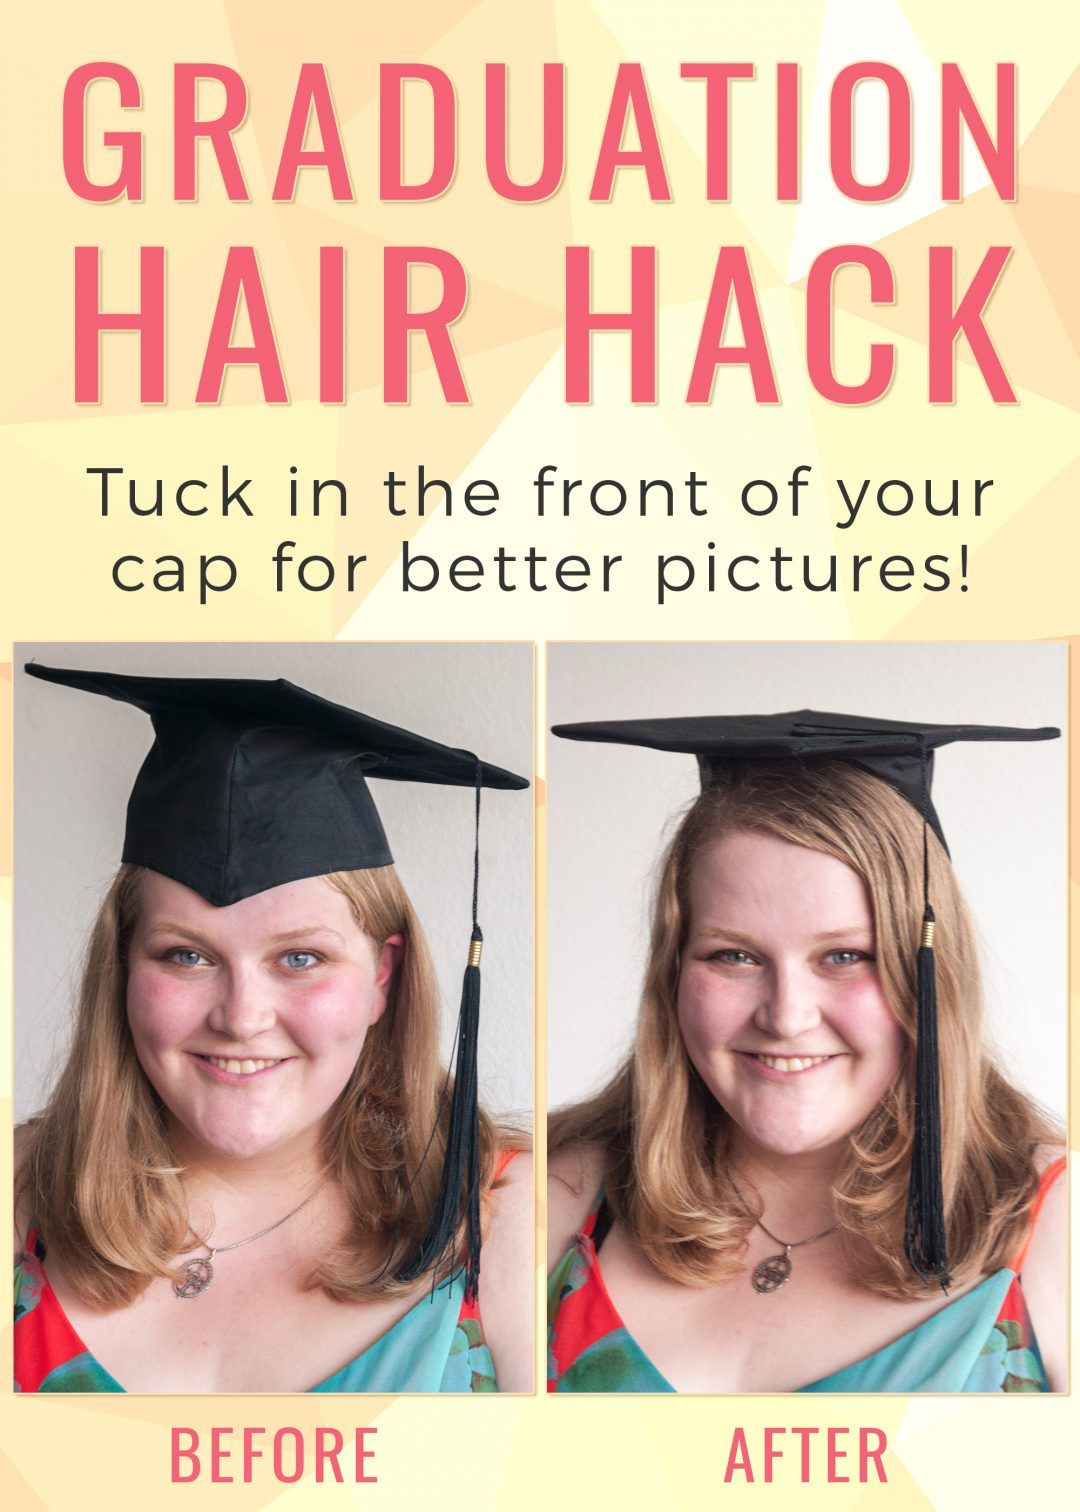 Graduation Cap Hairstyle Hairpop Net Hair Pop Hair Shop Graduation Hairstyles Graduation Hairstyles With Cap Cap Hair